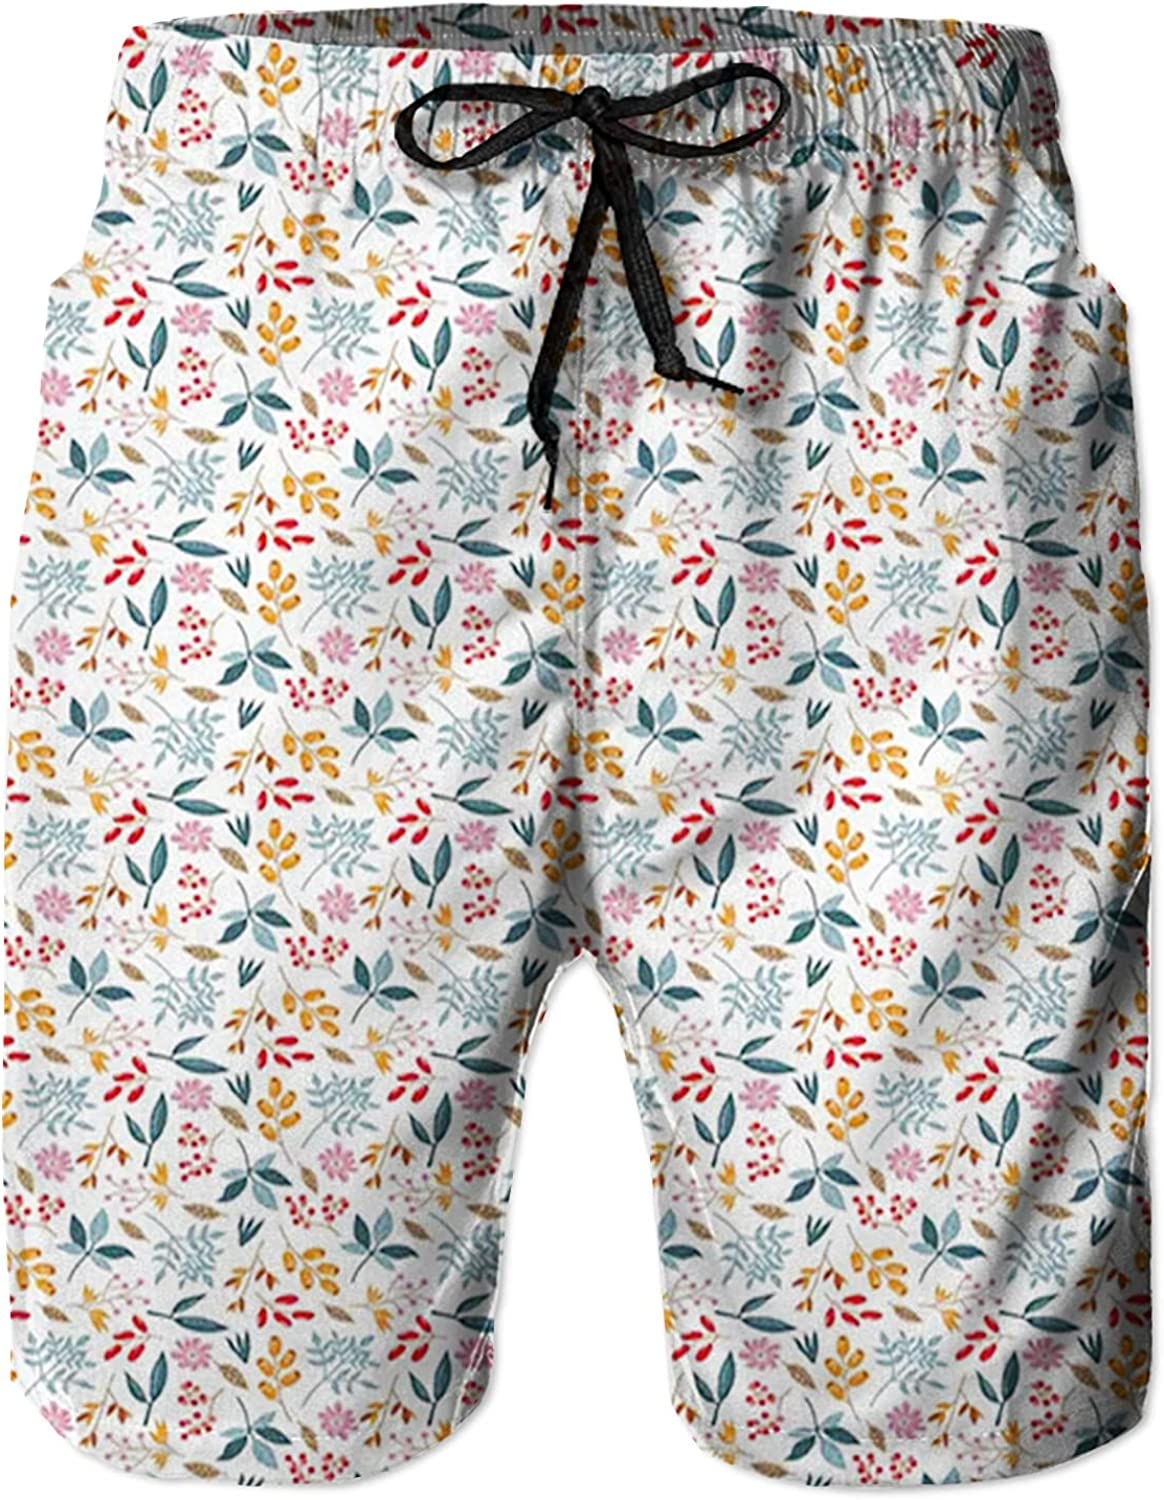 Men's Long Swim Trunks with Mesh Lining Beach Bathing Suits Board Shorts Swimwear with Pockets and No Mesh,Hand Drawn Foliage of The Autumn SeasonColorful Berry Branches and Flowers L